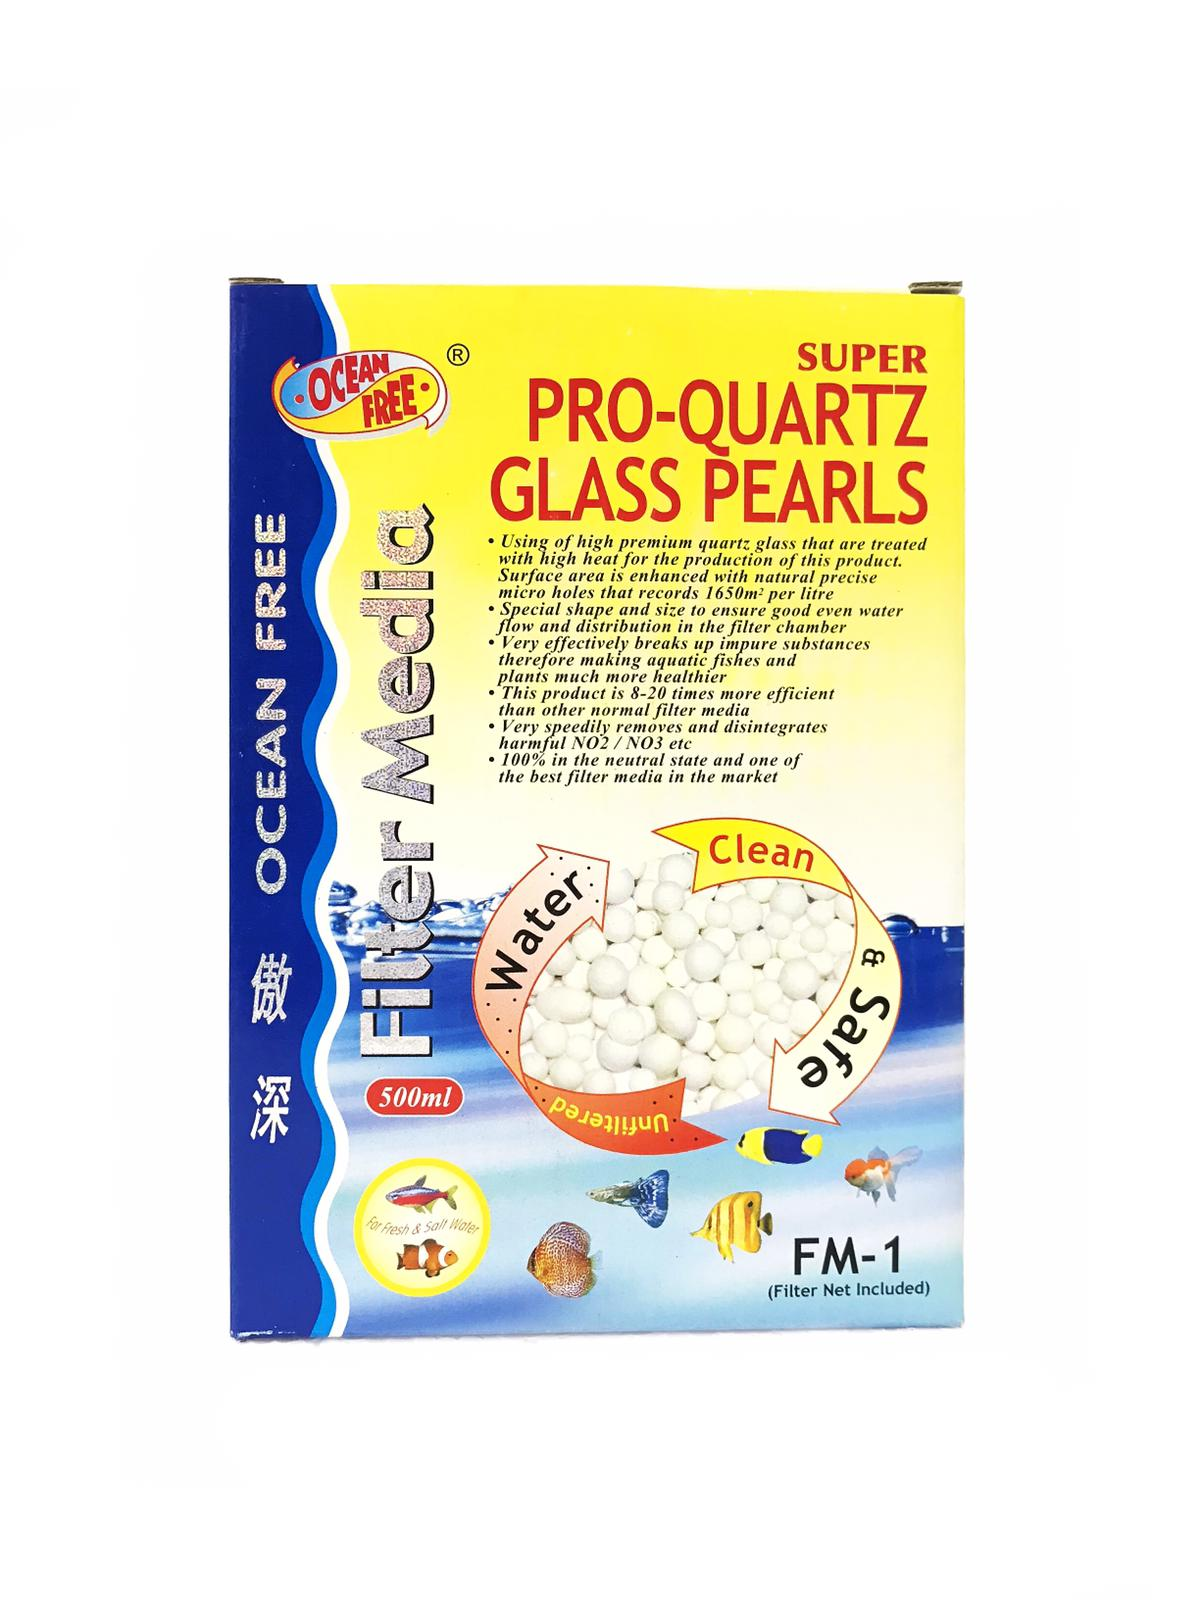 OF Super Pro-Quartz Glass Pearls FM-1